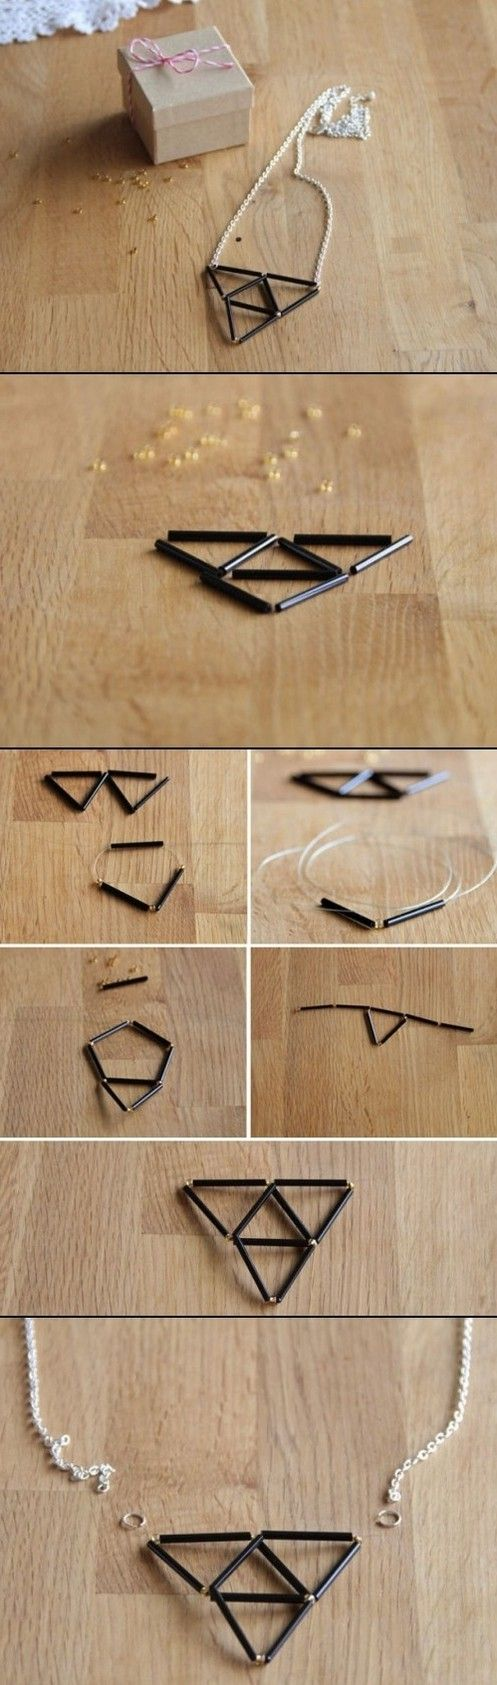 DIY Necklace ideas: